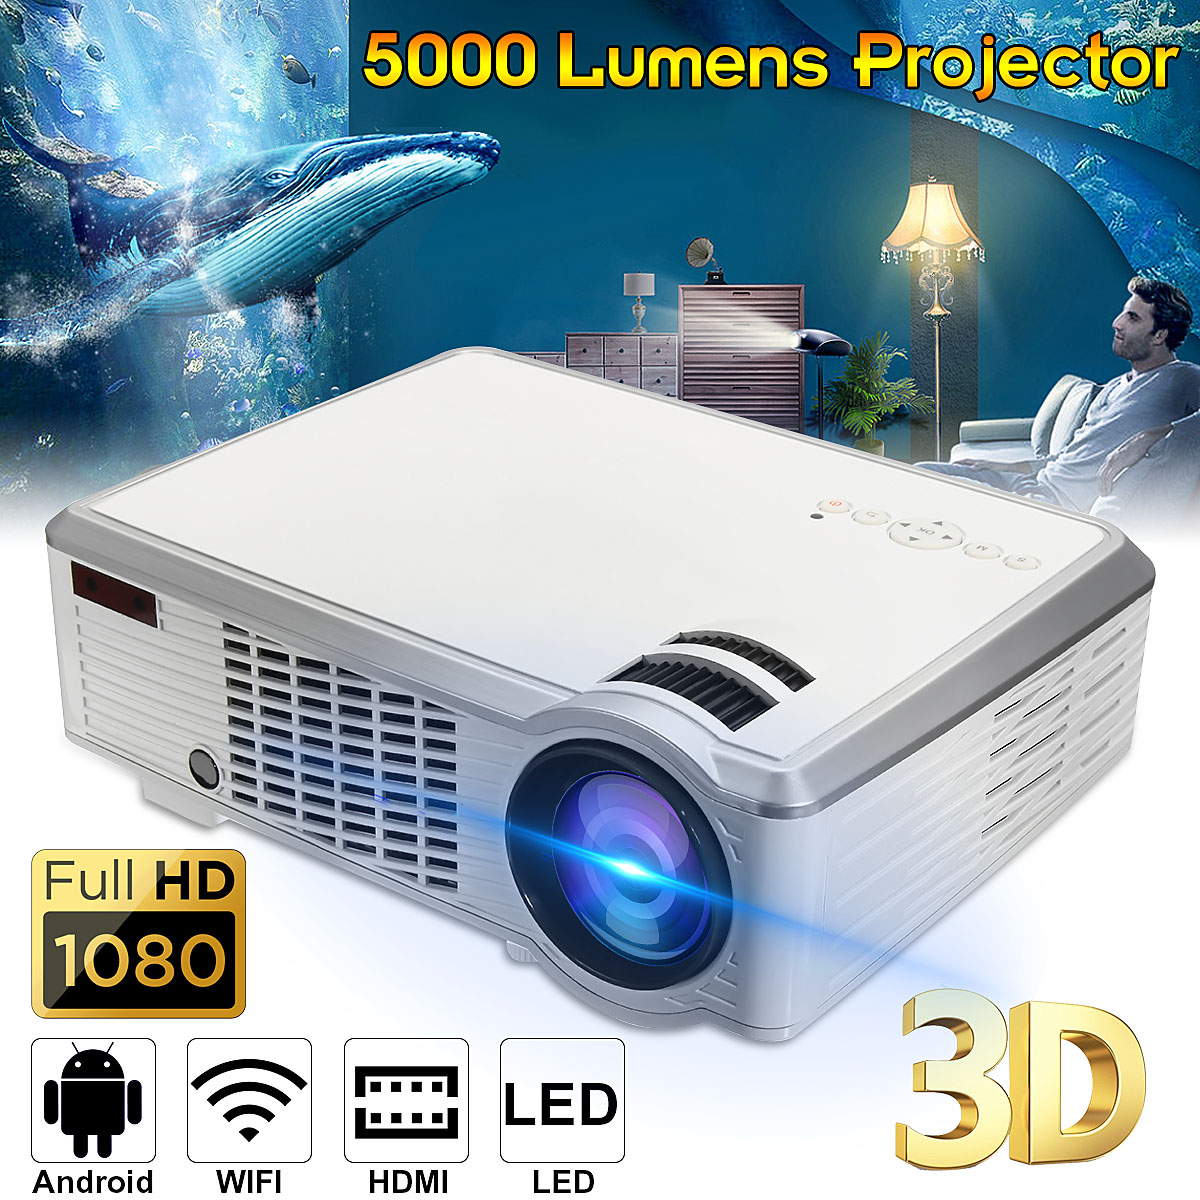 7000 Lumens 1080P Full HD Wireless Projector 3D LED Home Theater Cinema Multimedia Beamer HDMI USB AV CN/US/EU regulations стоимость